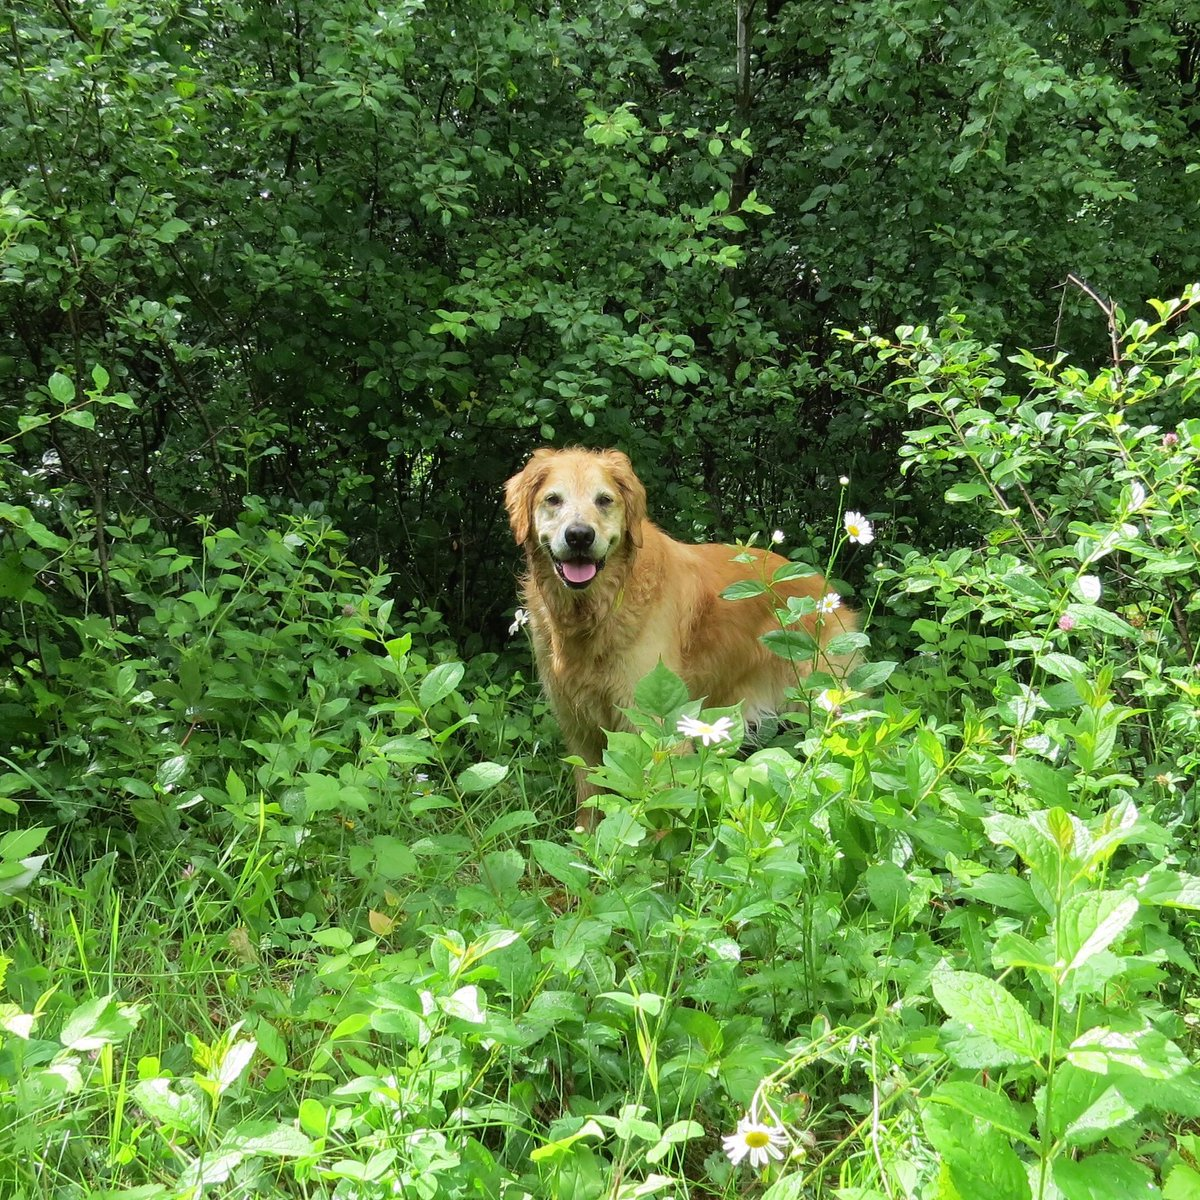 #weekendsmiles is OPEN for photo entry #GRC Darbi Jo demos @darbijothegoldn  What? Contest for smiles Who? All dogs may enter How-to? Post pix below/in tweet + # Add dog's name  Enter early  #dogcelebration #dogsoftwitter https://t.co/ECMt9GHdwF